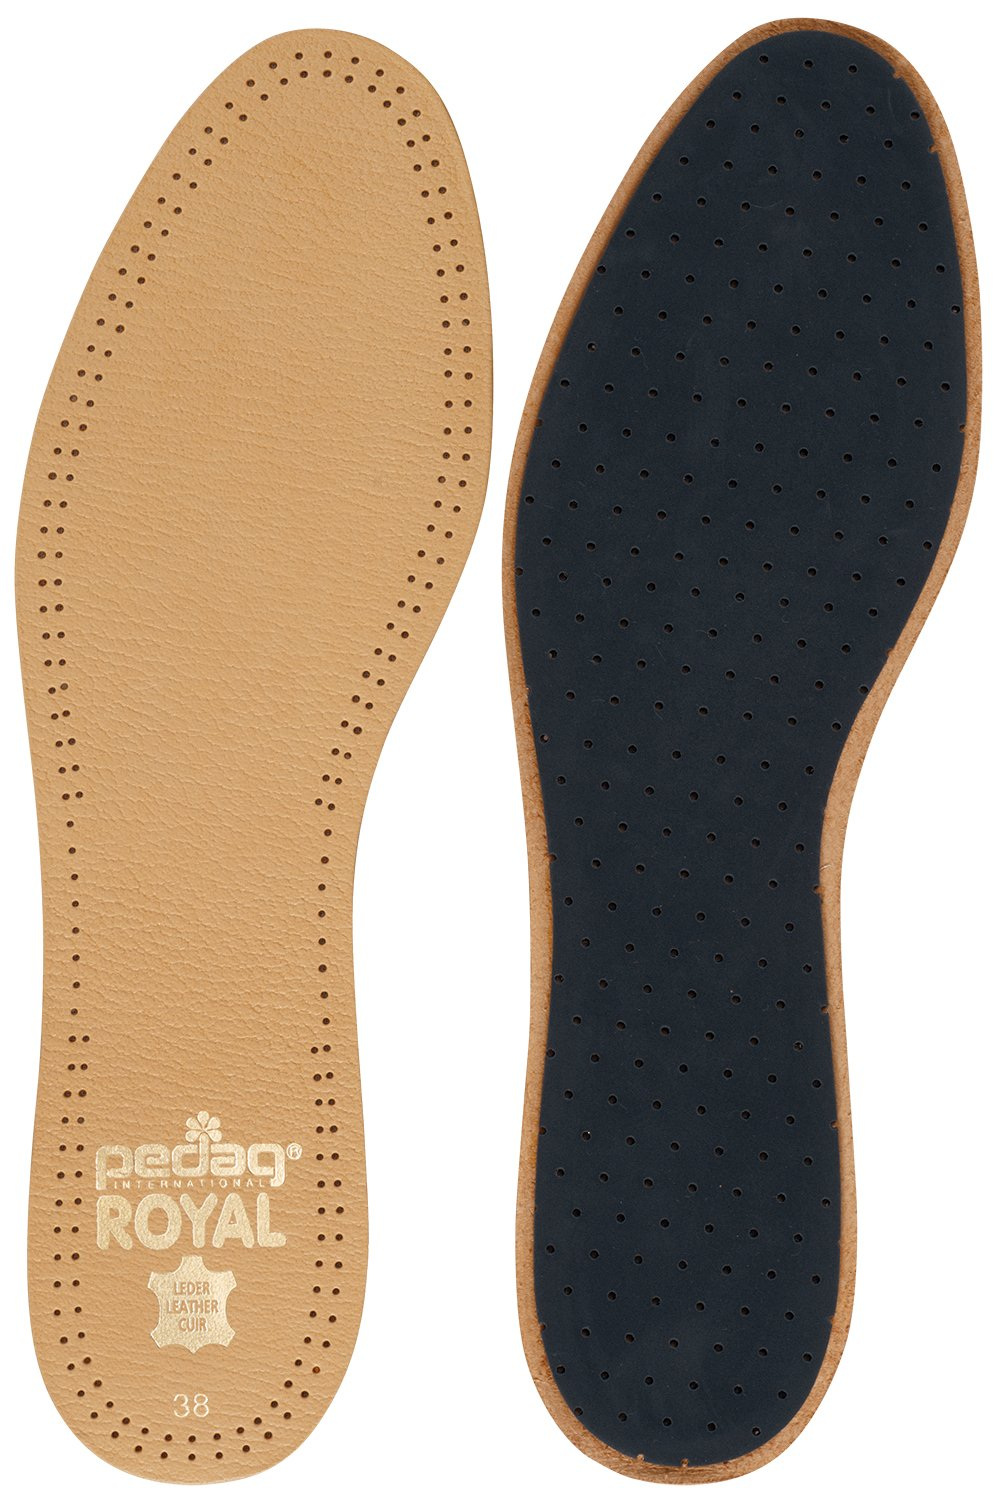 Pedag 102 Royal Vegetable Tanned Sheepskin Insole with Natural Active Carbon Filter, Slightly Padded with